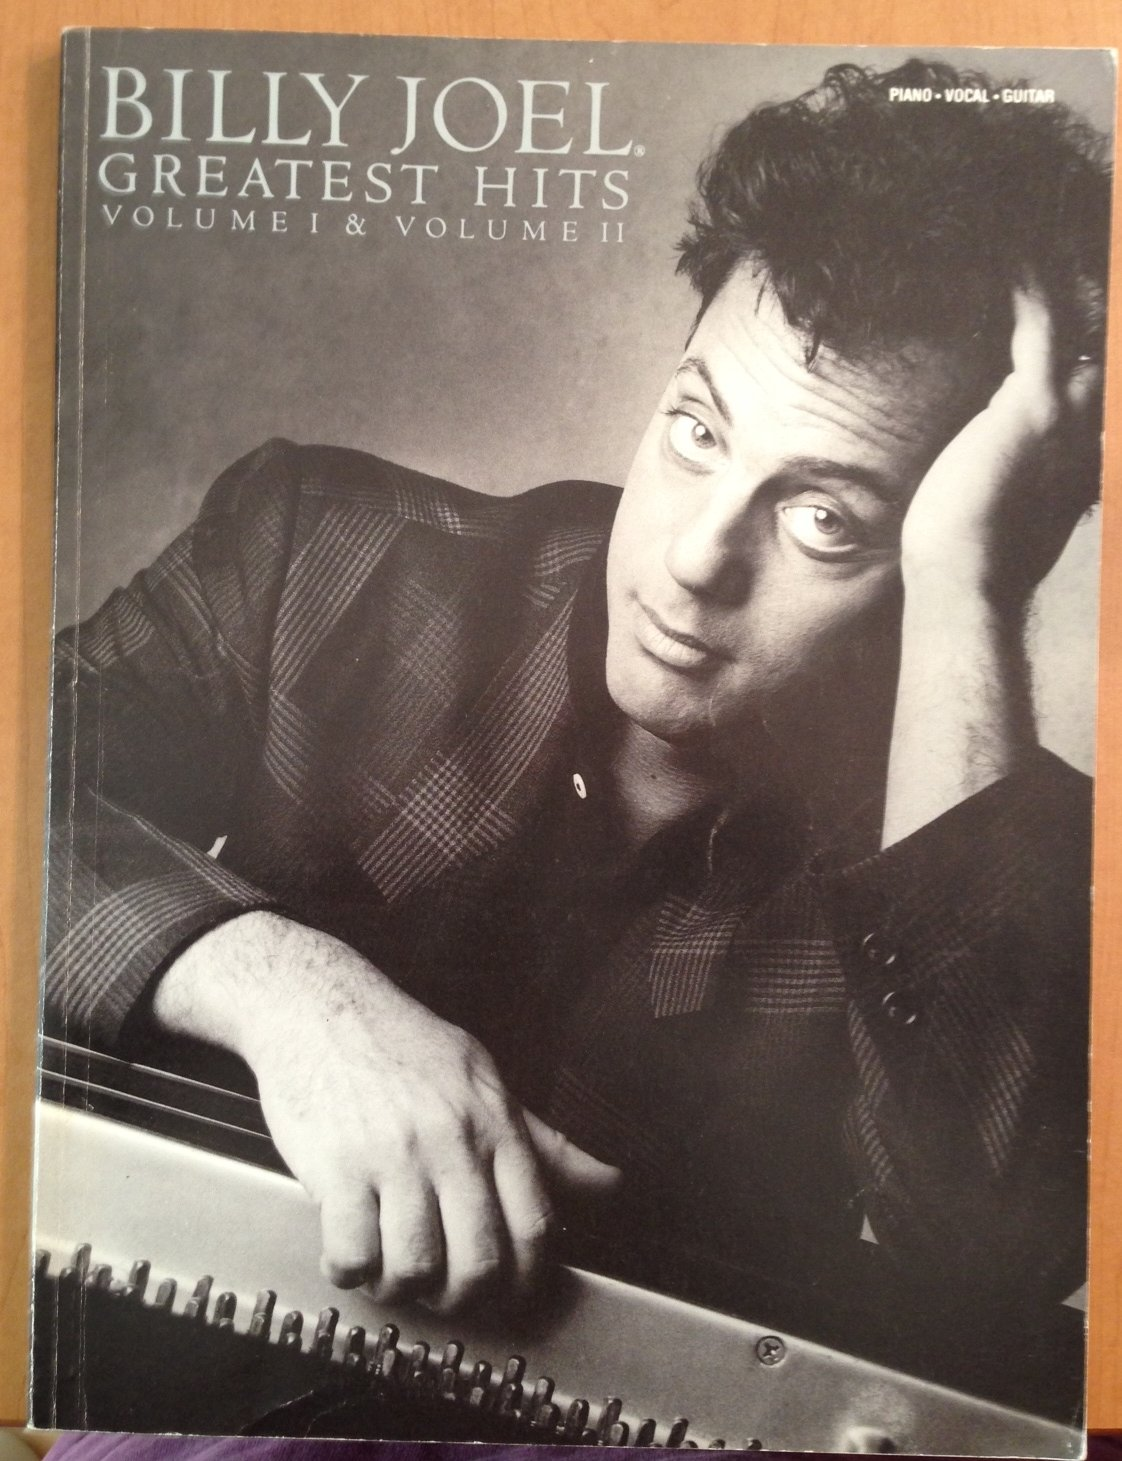 Billy Joel - Greatest Hits, Volumes 1 and 2 - Piano/Vocal/Guitar Artist Songbook